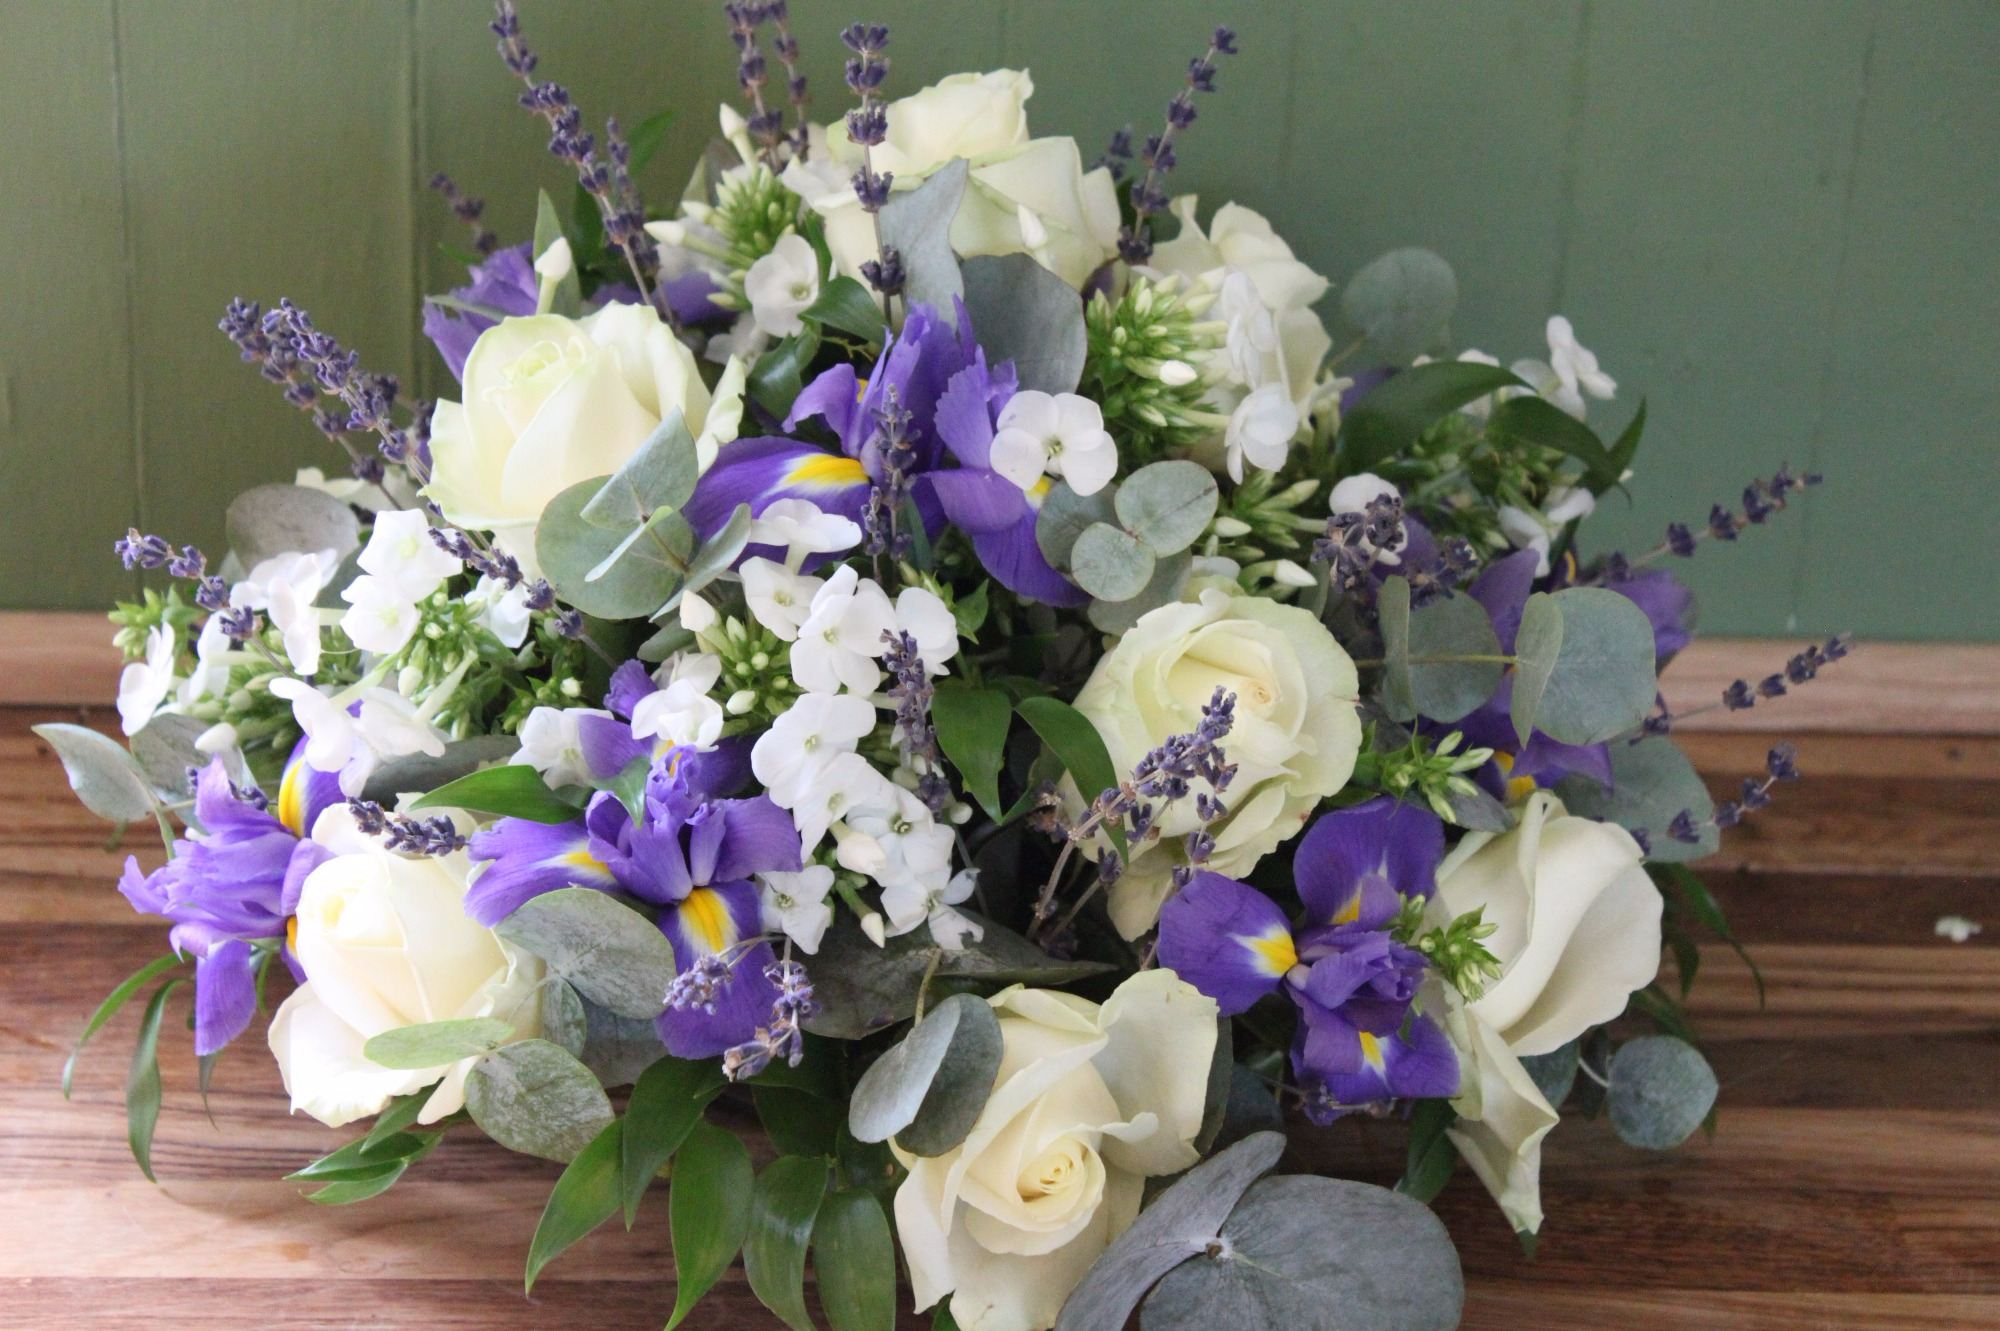 Ivory rose, purple iris and white phlox posy